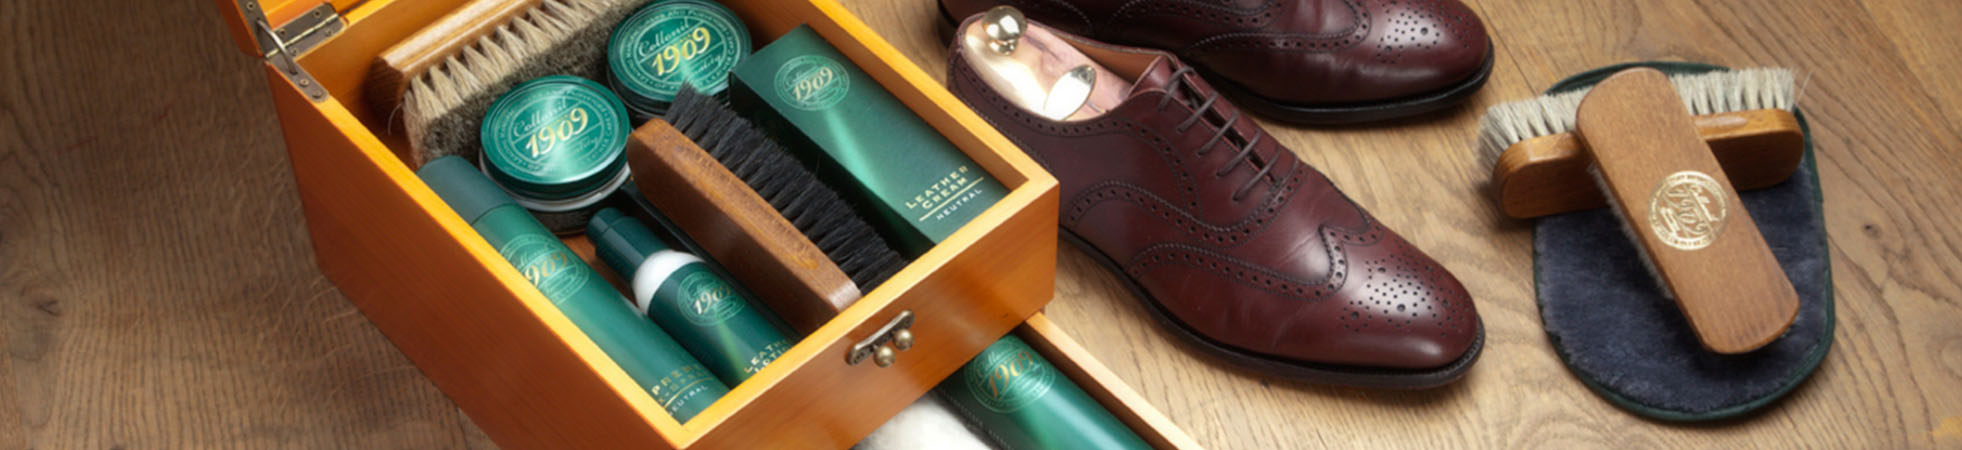 Shoe care and repair products at Suitable ✔ Shoepolish, Waxing sprays, Poloshing brushes and more ✔ Everything you\'ll to keep your shoes as good as new! ✔ Shop onlines